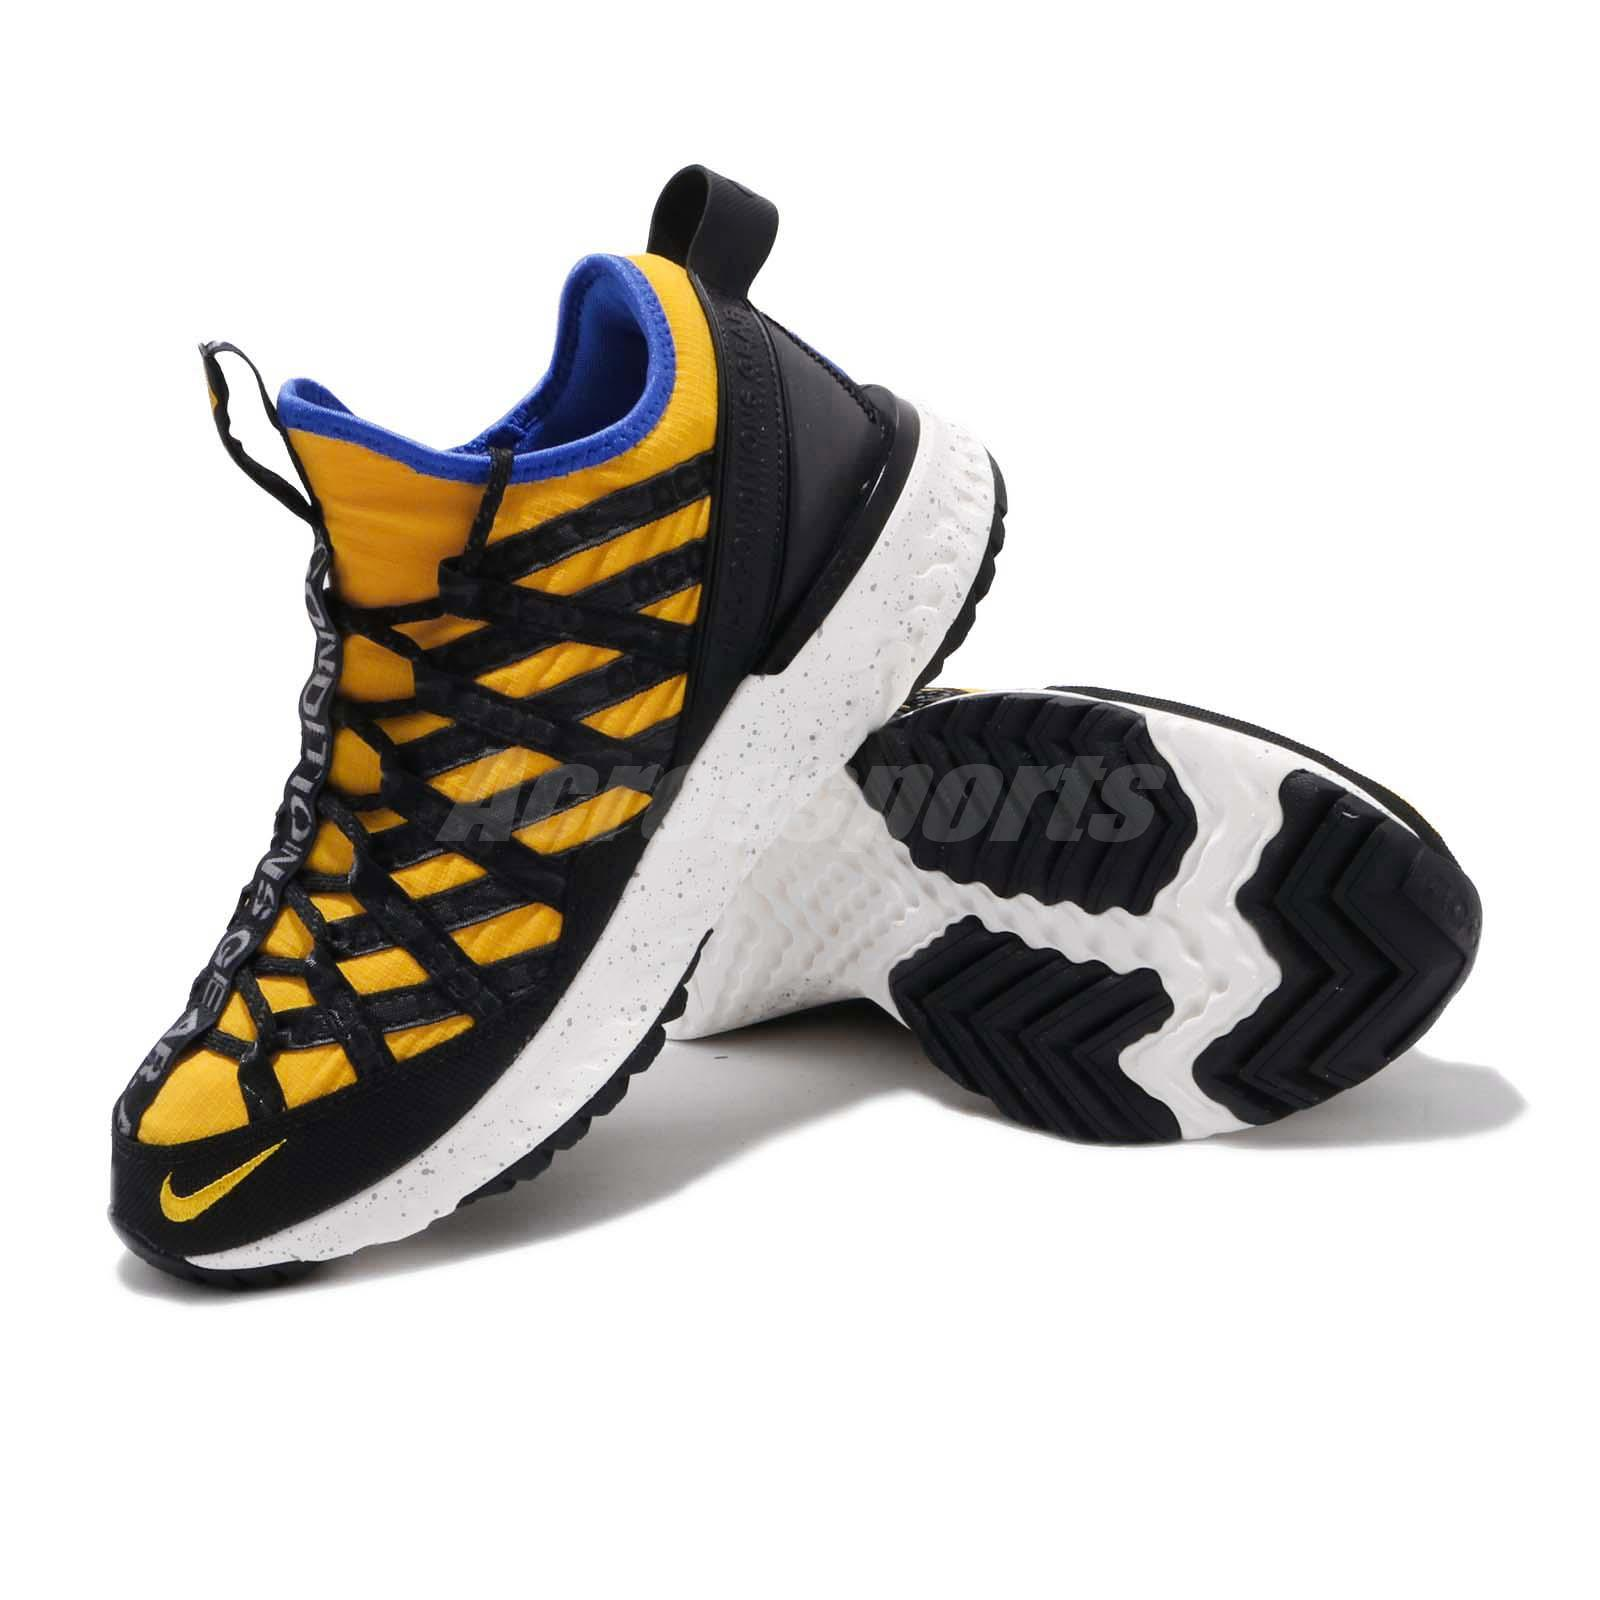 los angeles 6edc8 d66e9 Nike ACG React Terra Gobe Amarillo Yellow Black Mens Outdoors Shoes ...